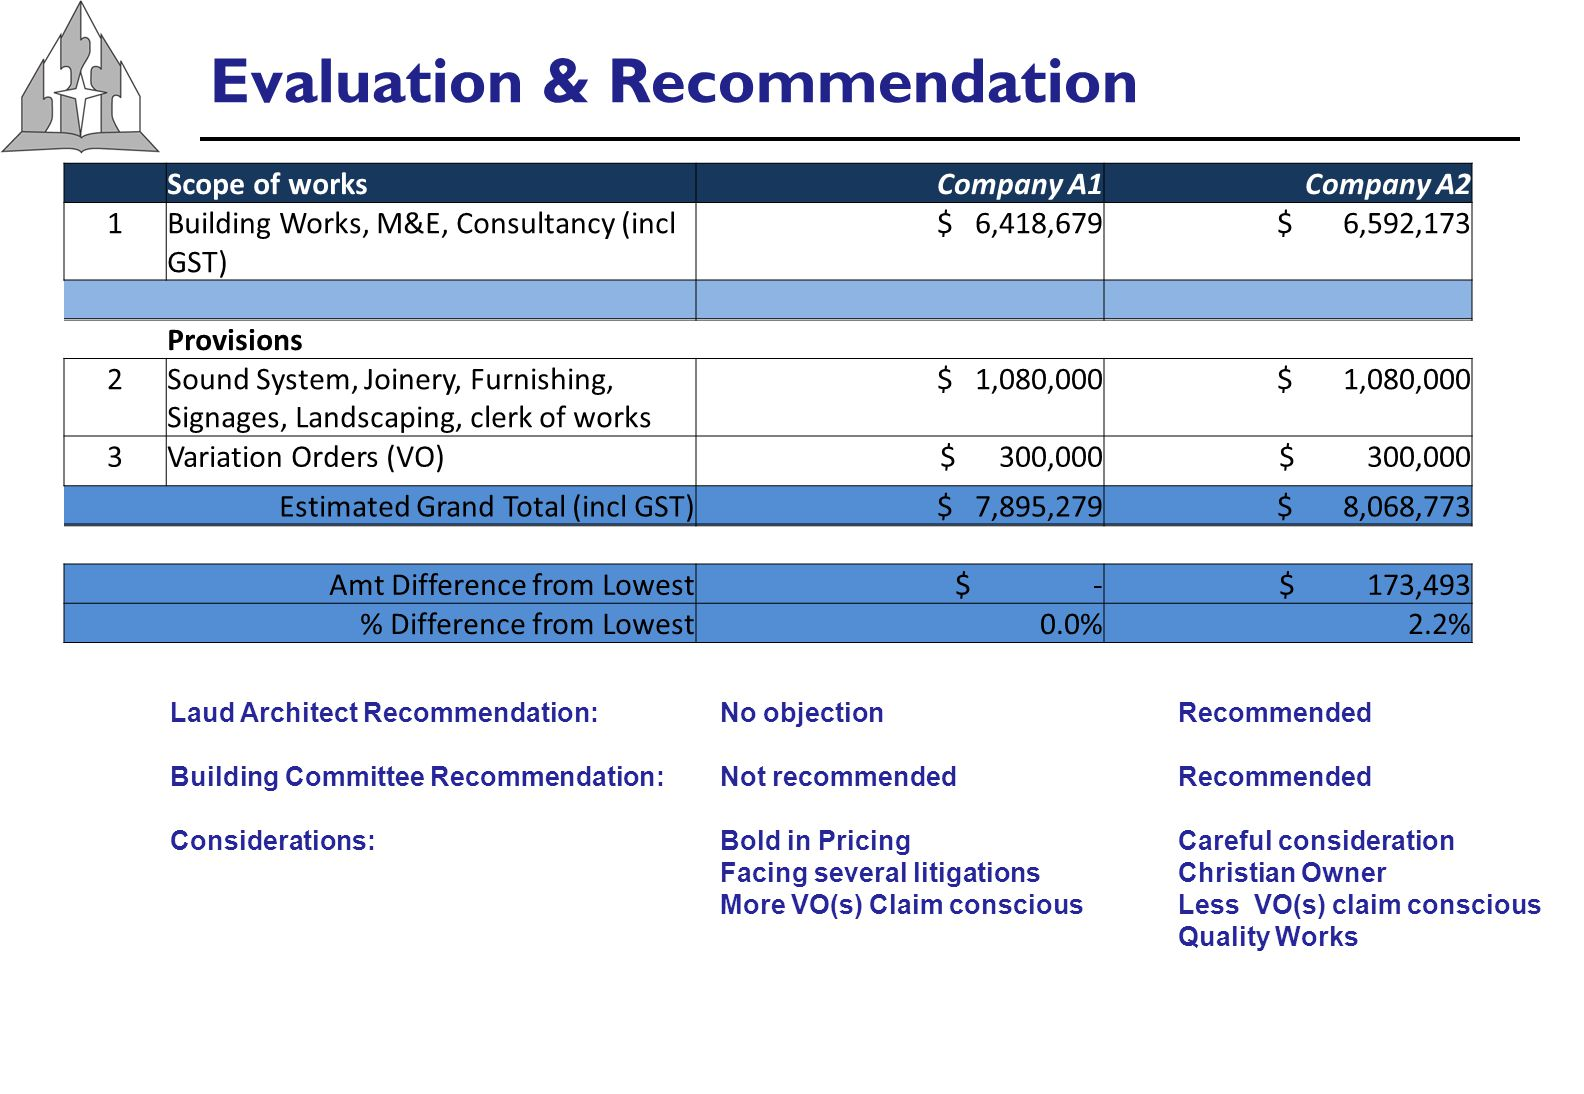 Evaluation & Recommendation Laud Architect Recommendation: No objection Recommended Building Committee Recommendation: Not recommendedRecommended Considerations: Bold in PricingCareful consideration Facing several litigations Christian Owner More VO(s) Claim consciousLess VO(s) claim conscious Quality Works Scope of worksCompany A1Company A2 1Building Works, M&E, Consultancy (incl GST) $ 6,418,679 $ 6,592,173 Provisions 2Sound System, Joinery, Furnishing, Signages, Landscaping, clerk of works $ 1,080,000 3Variation Orders (VO) $ 300,000 Estimated Grand Total (incl GST) $ 7,895,279 $ 8,068,773 Amt Difference from Lowest $ - $ 173,493 % Difference from Lowest0.0%2.2%